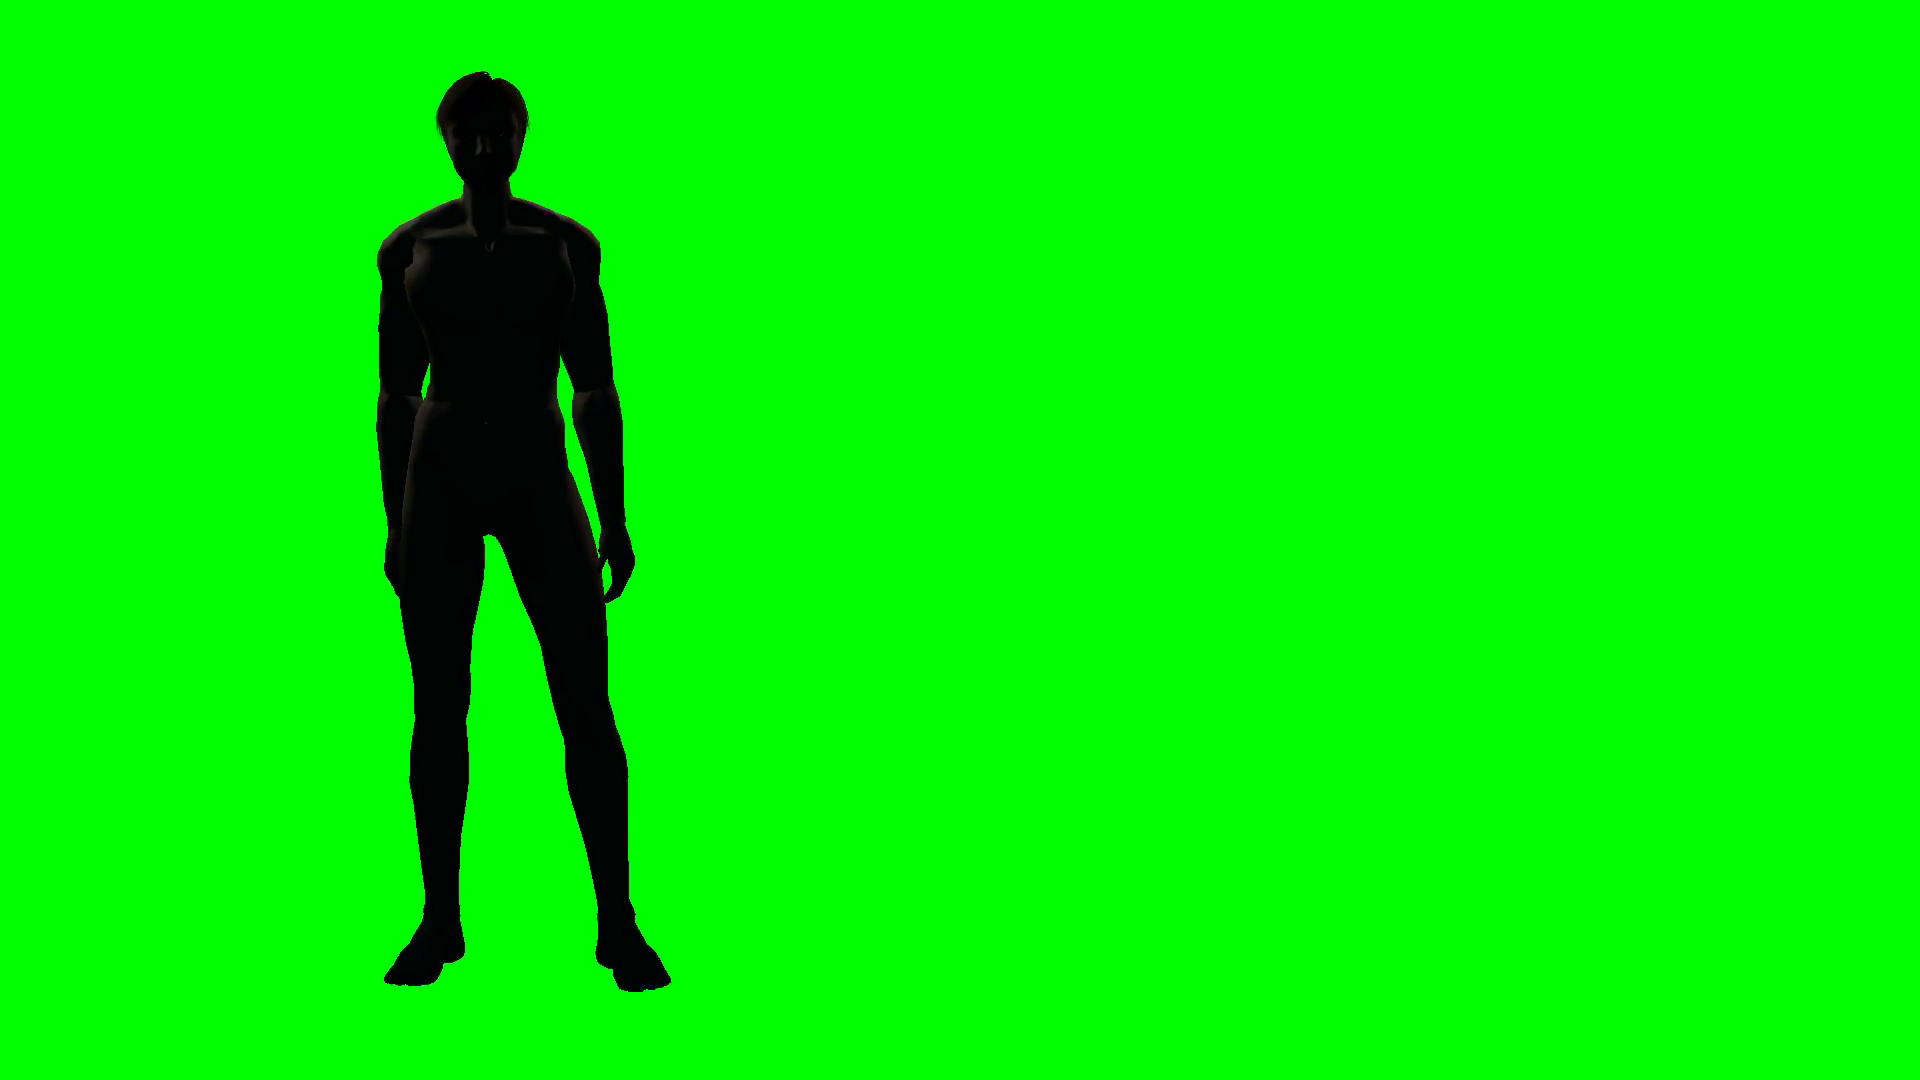 1920x1080 Male Body Silhouette Green Screen Motion Background